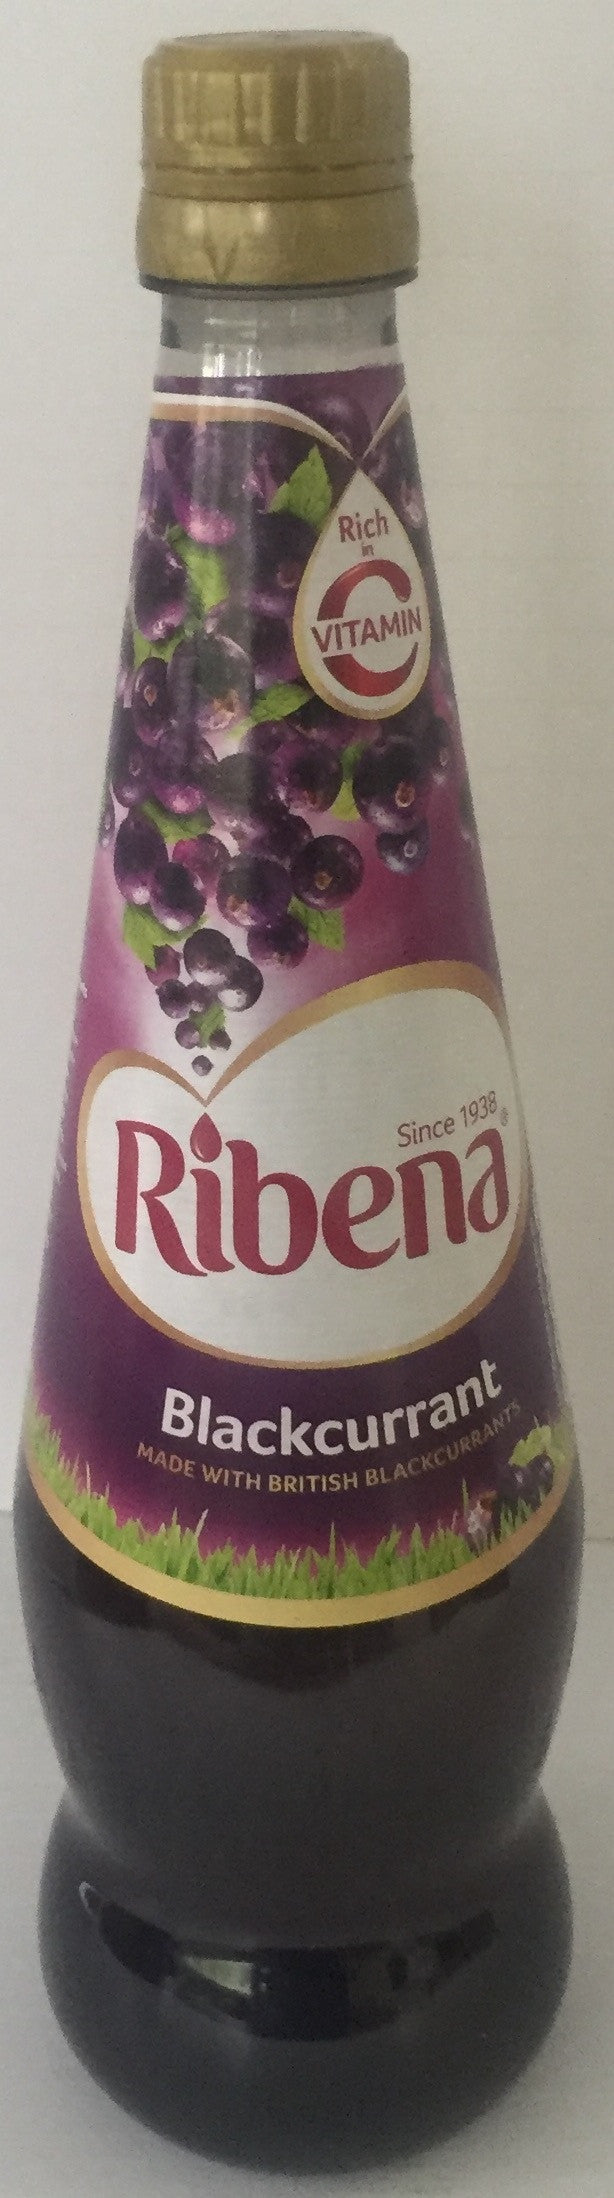 Ribena Blackcurrant Drink 850ml